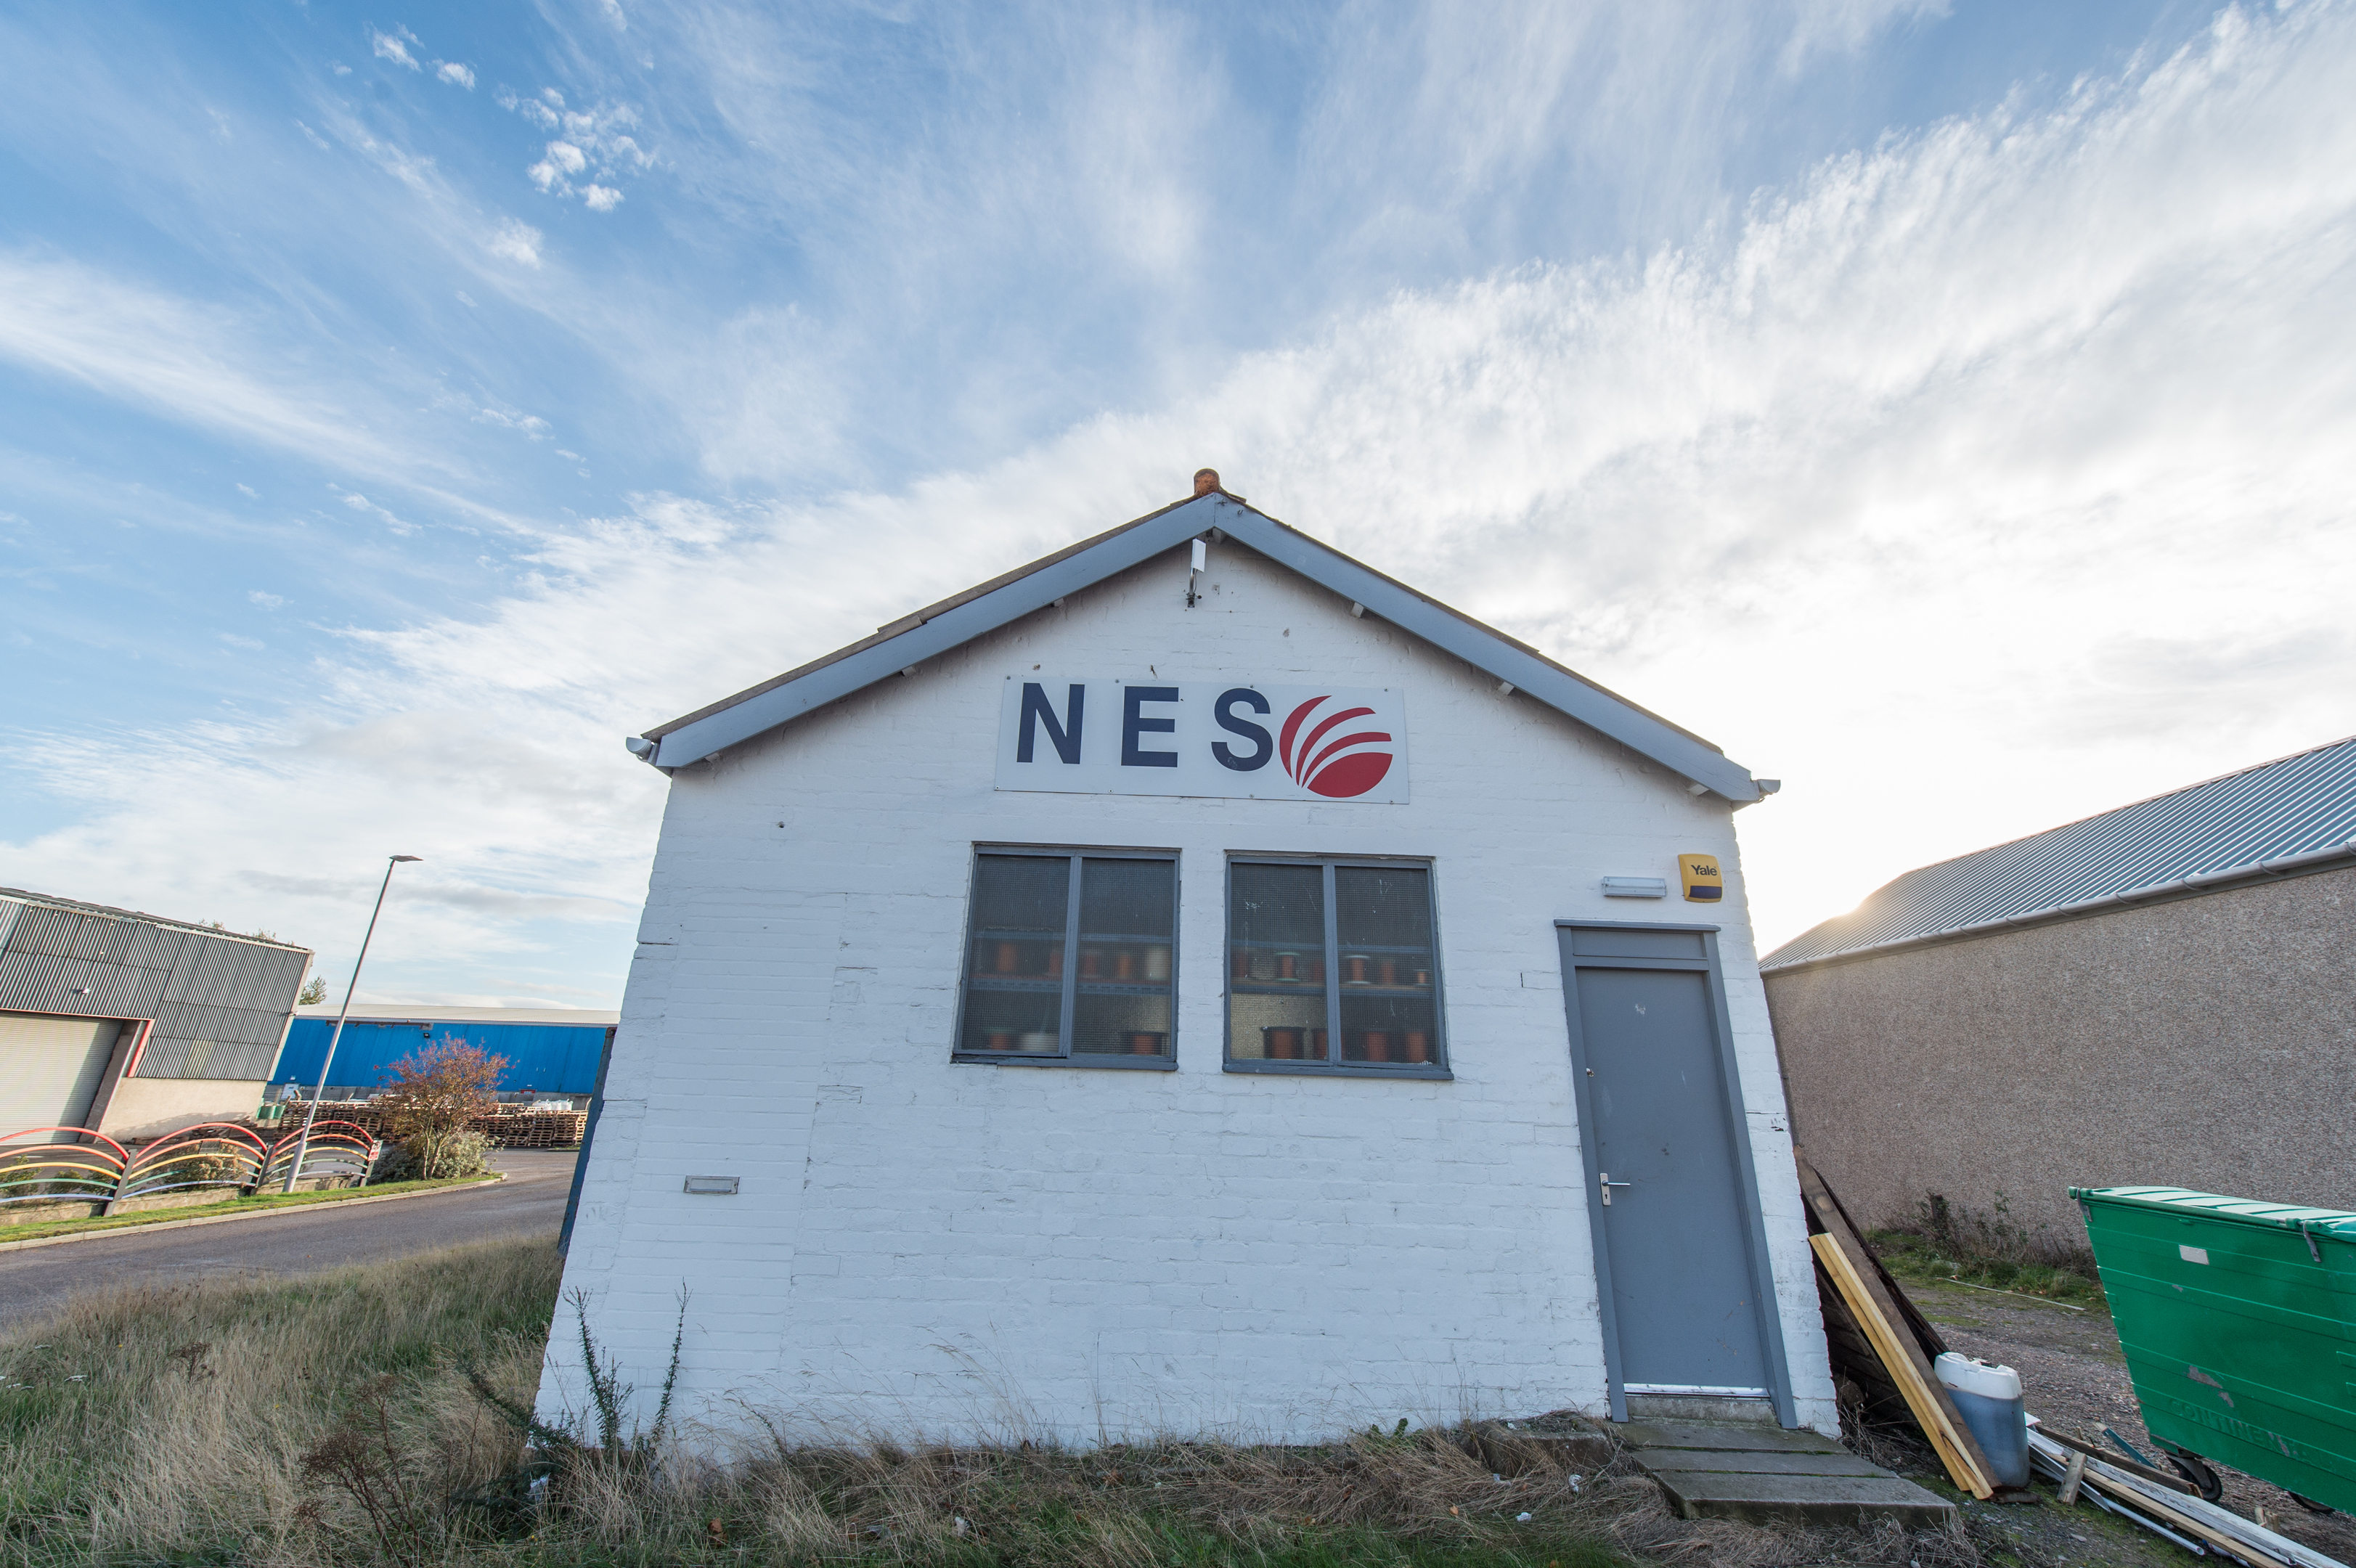 North Electrical Services in Elgin, Moray.